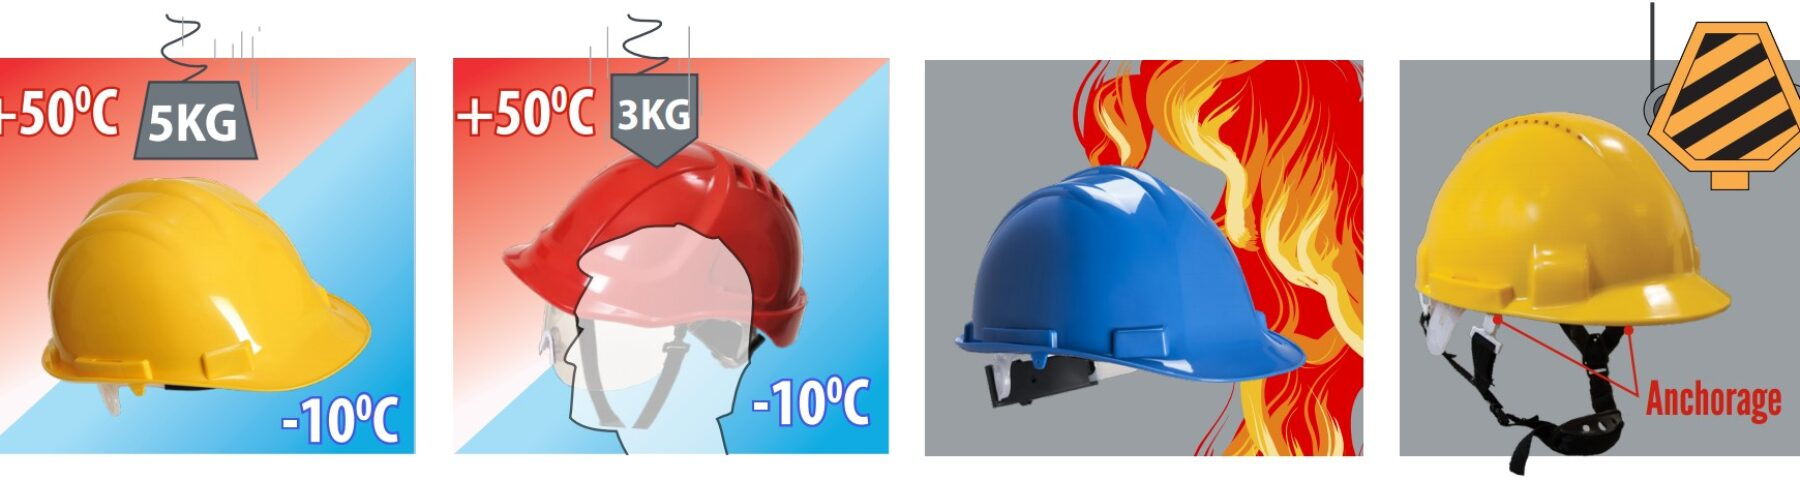 Head protection standards explained